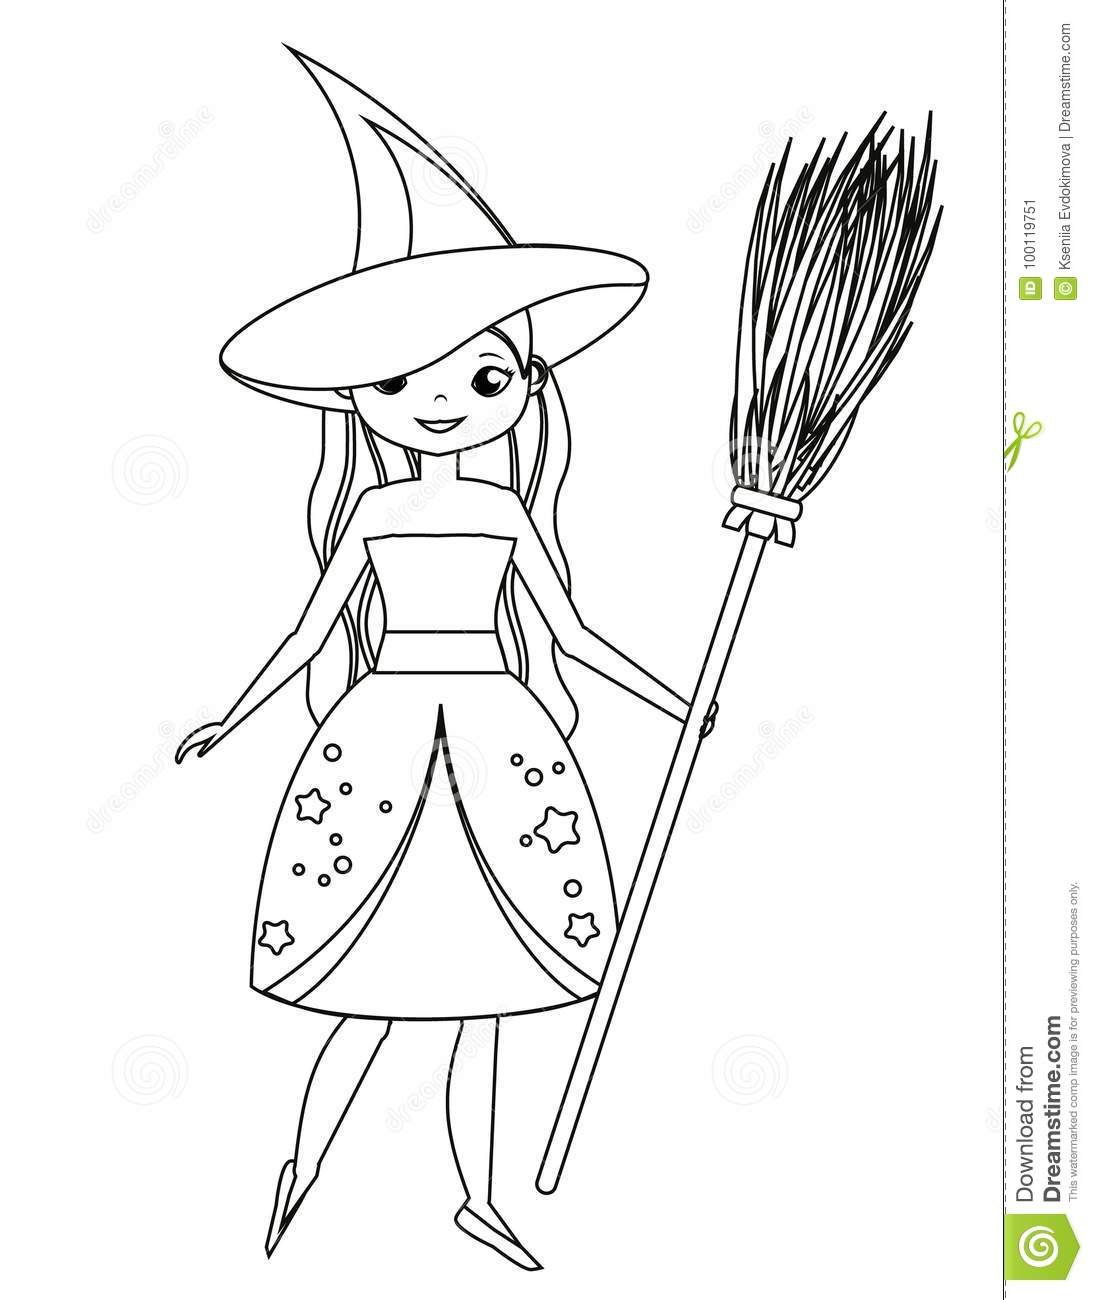 Coloring Page For Children. Cute Witch Holding Broom. Girl In ...